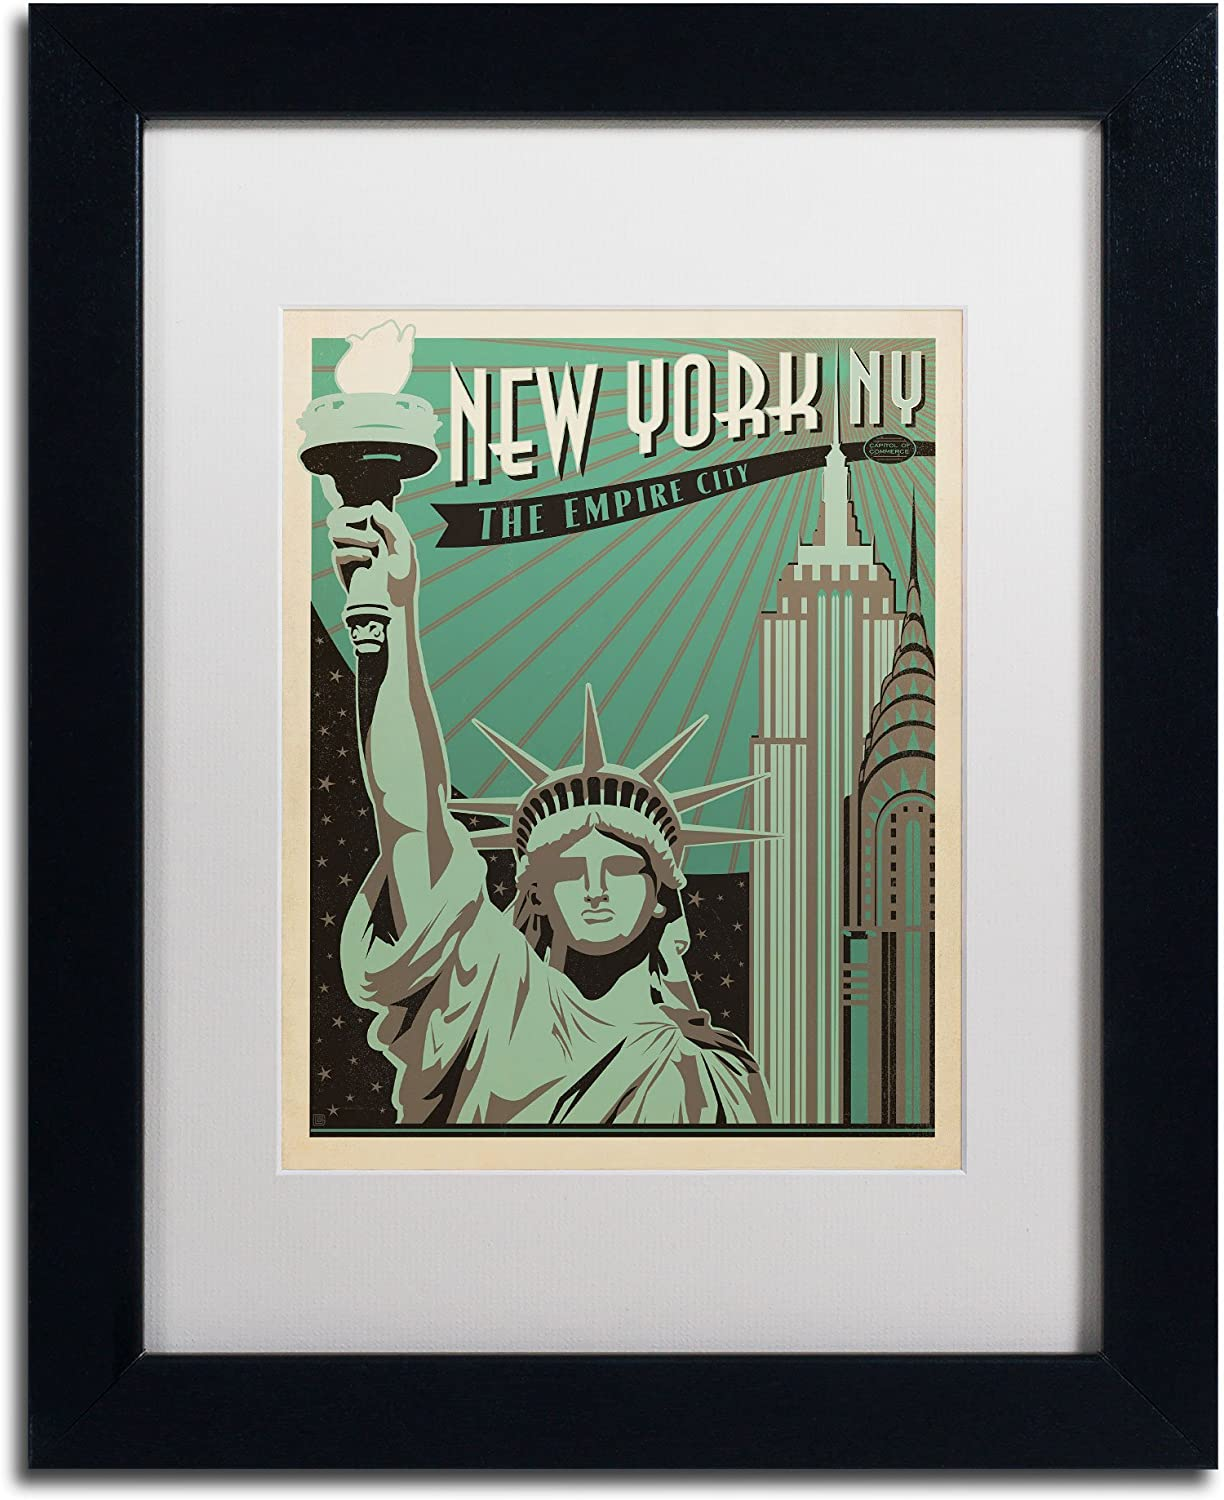 Trademark Fine Art New York NY Canvas Artwork by Anderson Design Group, 11 by 14Inch, White Matte with Black Frame